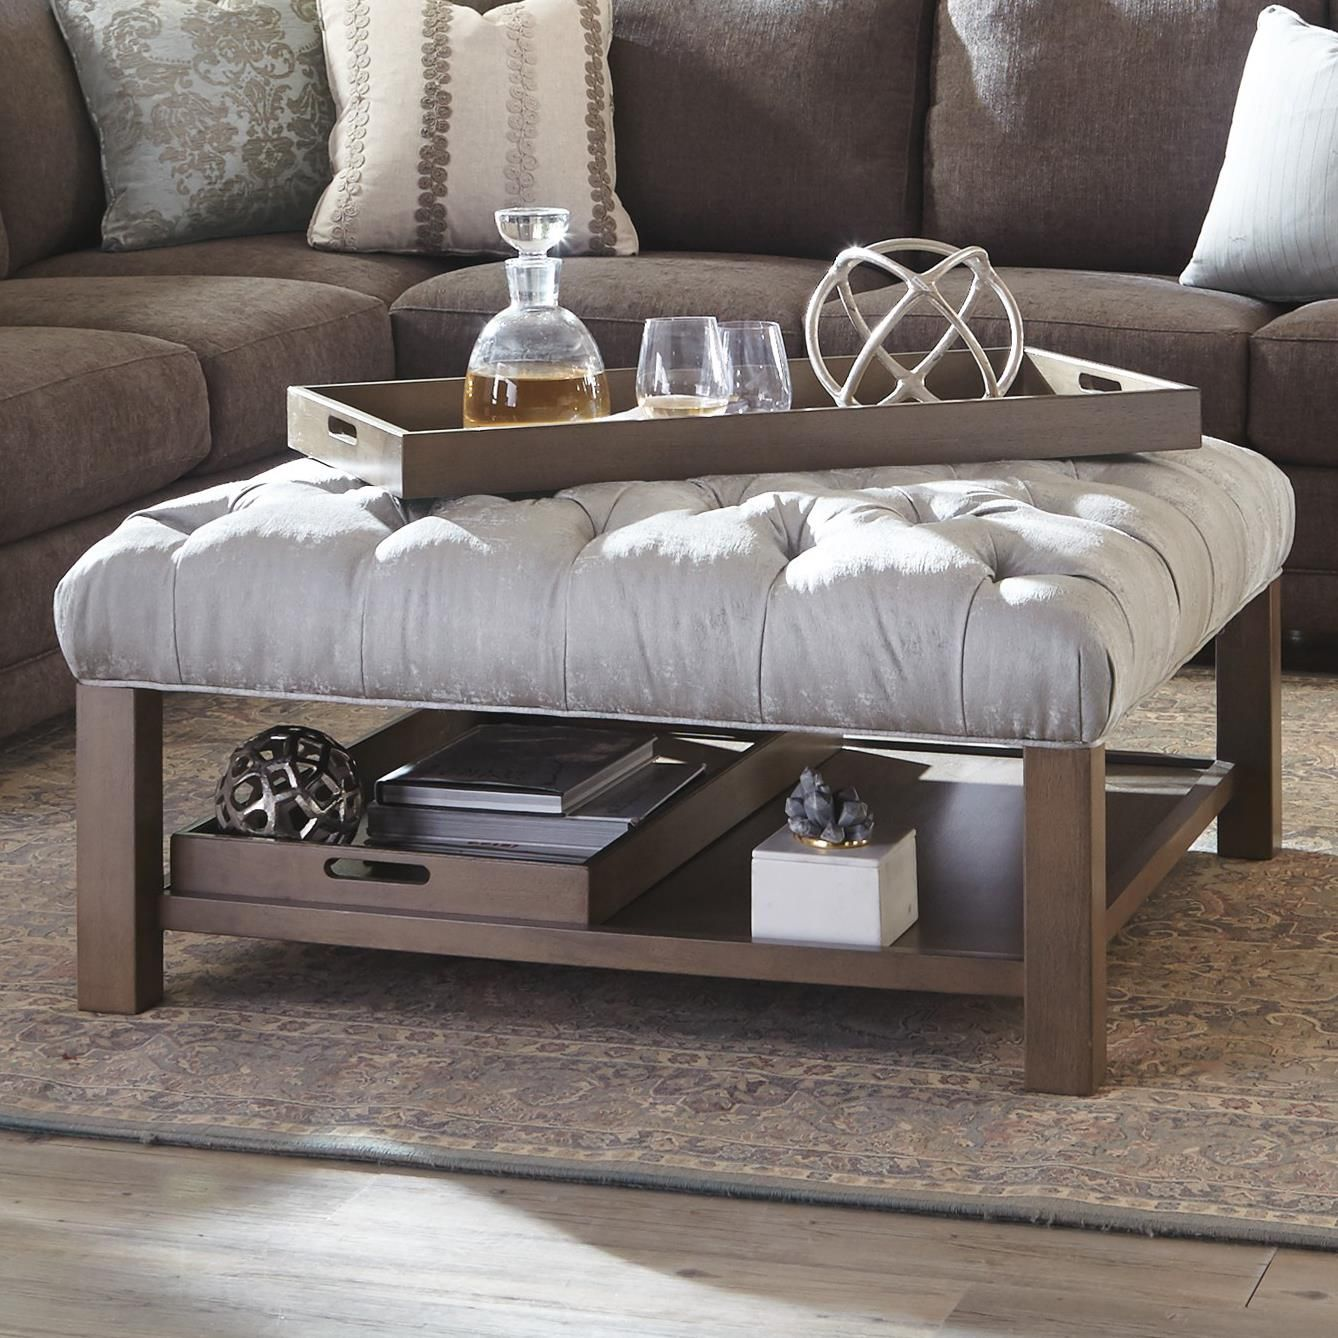 Accent Ottomans Ottoman With Storage Trays By Hickory Craft